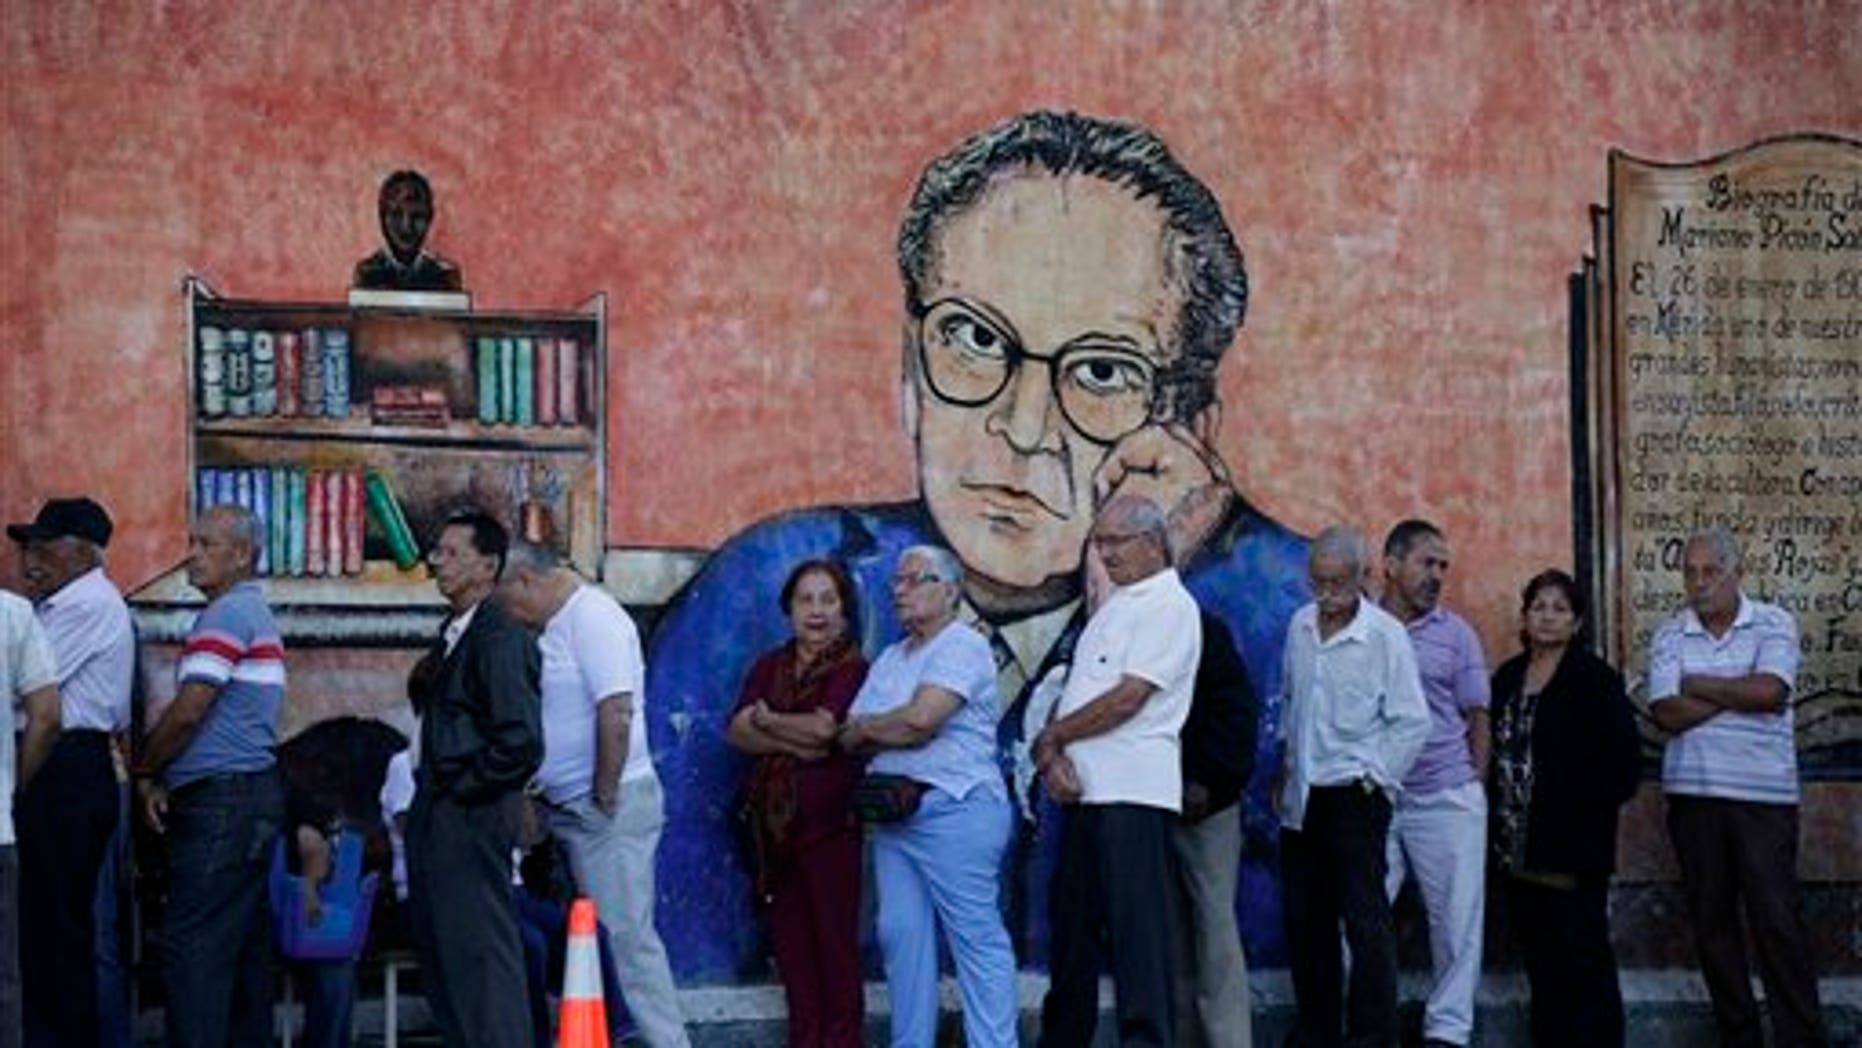 Residents in front of a wall with a painting depicting Venezuelan writer and diplomat Mariano Picon as they wait in line to enter a polling station to vote during municipal elections in Caracas, Venezuela, Sunday, Dec. 8, 2013. Venezuelans head to the polls to elect mayors and city councilors at a moment when the country's economic troubles have deepened, with inflation touching a two-decade high of 54 percent, and shortages of everything from toilet paper to milk spreading while the black market value of the currency plunges.  (AP Photo/Ariana Cubillos)